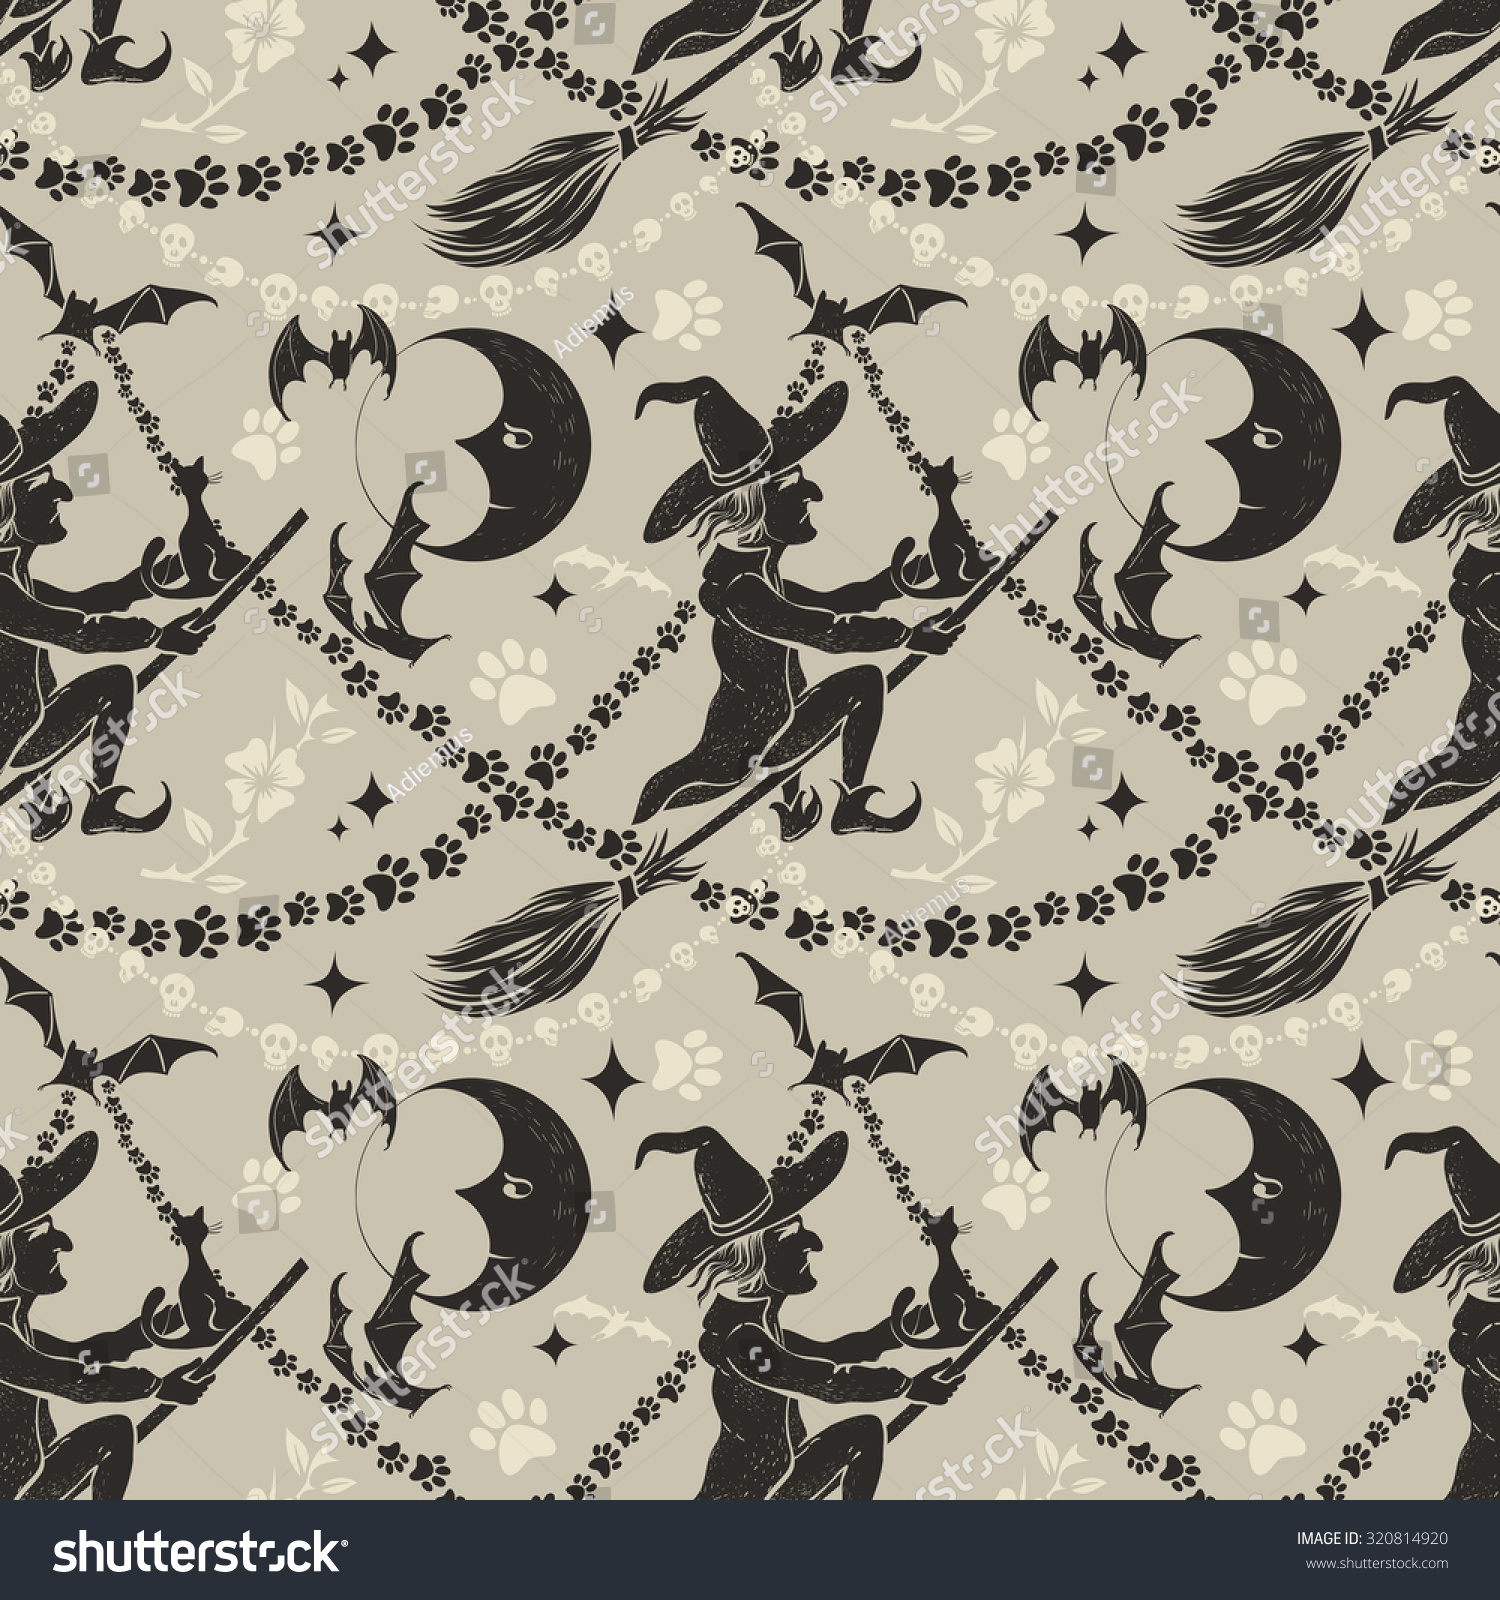 Most Inspiring Wallpaper Halloween Vintage - stock-vector-vintage-halloween-seamless-background-with-flying-witch-and-ornament-320814920  HD_628633.jpg